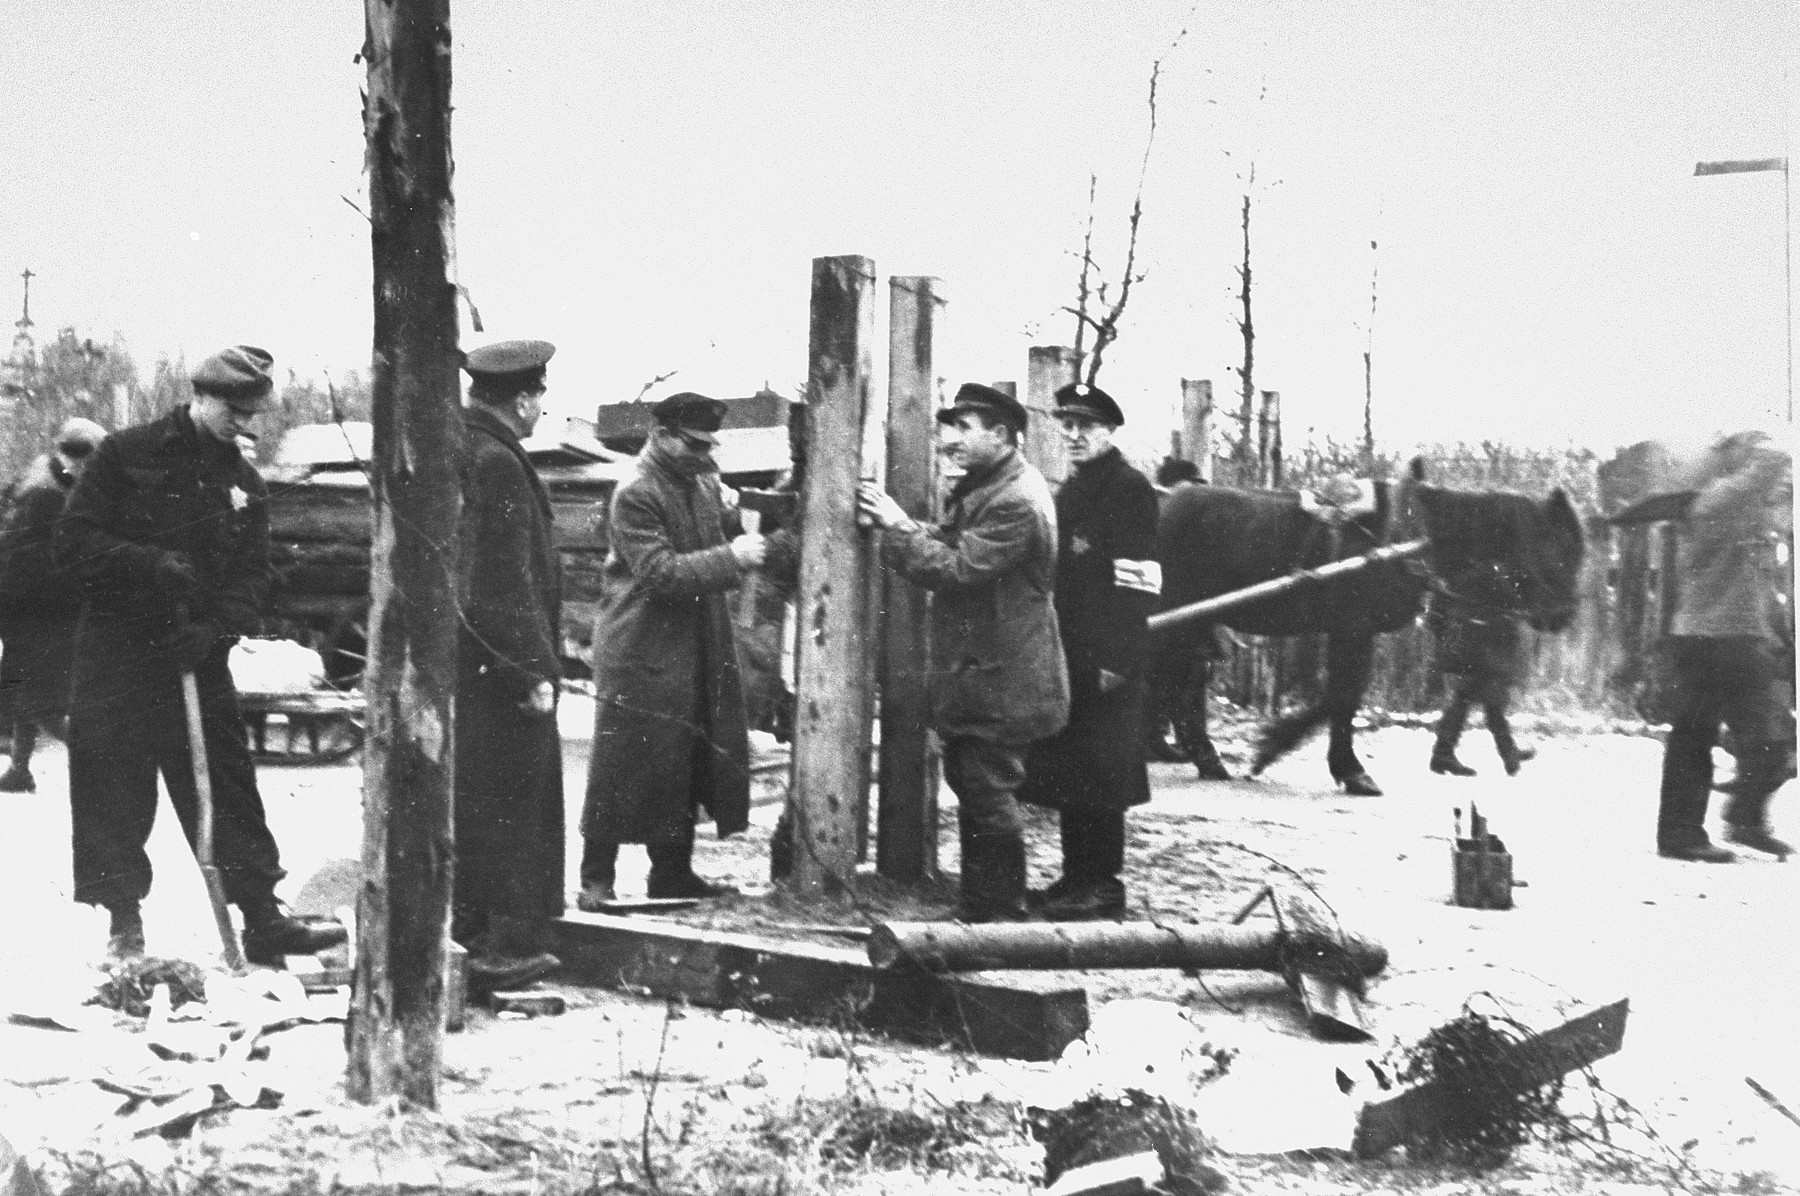 """Jews repairing or moving the ghetto fence after a reduction of the ghetto boundaries.  Pictured at the left is Abe Malnik.  Second from the right is Yankel Kaplan.  On July 24, 1941, three weeks before all Jews had to move into the ghetto, the Kovno city government ordered that the Jews erect a fence around the ghetto.  A new order stipulated that work was to begin on July 30.  Fifty men were to report to work at 8:00 in the morning for the purpose of erecting the fence.  Posts were placed one meter apart and barbed wire was strung every twenty centimeters.  Signs were posted warning that the area  within three meters of the fence was declared a """"death zone""""; anyone caught in that zone would be summarily shot.  Many Jews were shot for approaching the fence.  However, when guards were not looking, Jews and Lithuanians traded through the fence, and some Jews, using wire cutters, managed to cut the fence and escape from the ghetto.  The ghetto fire department was responsible for mainaining and repairing the fence."""